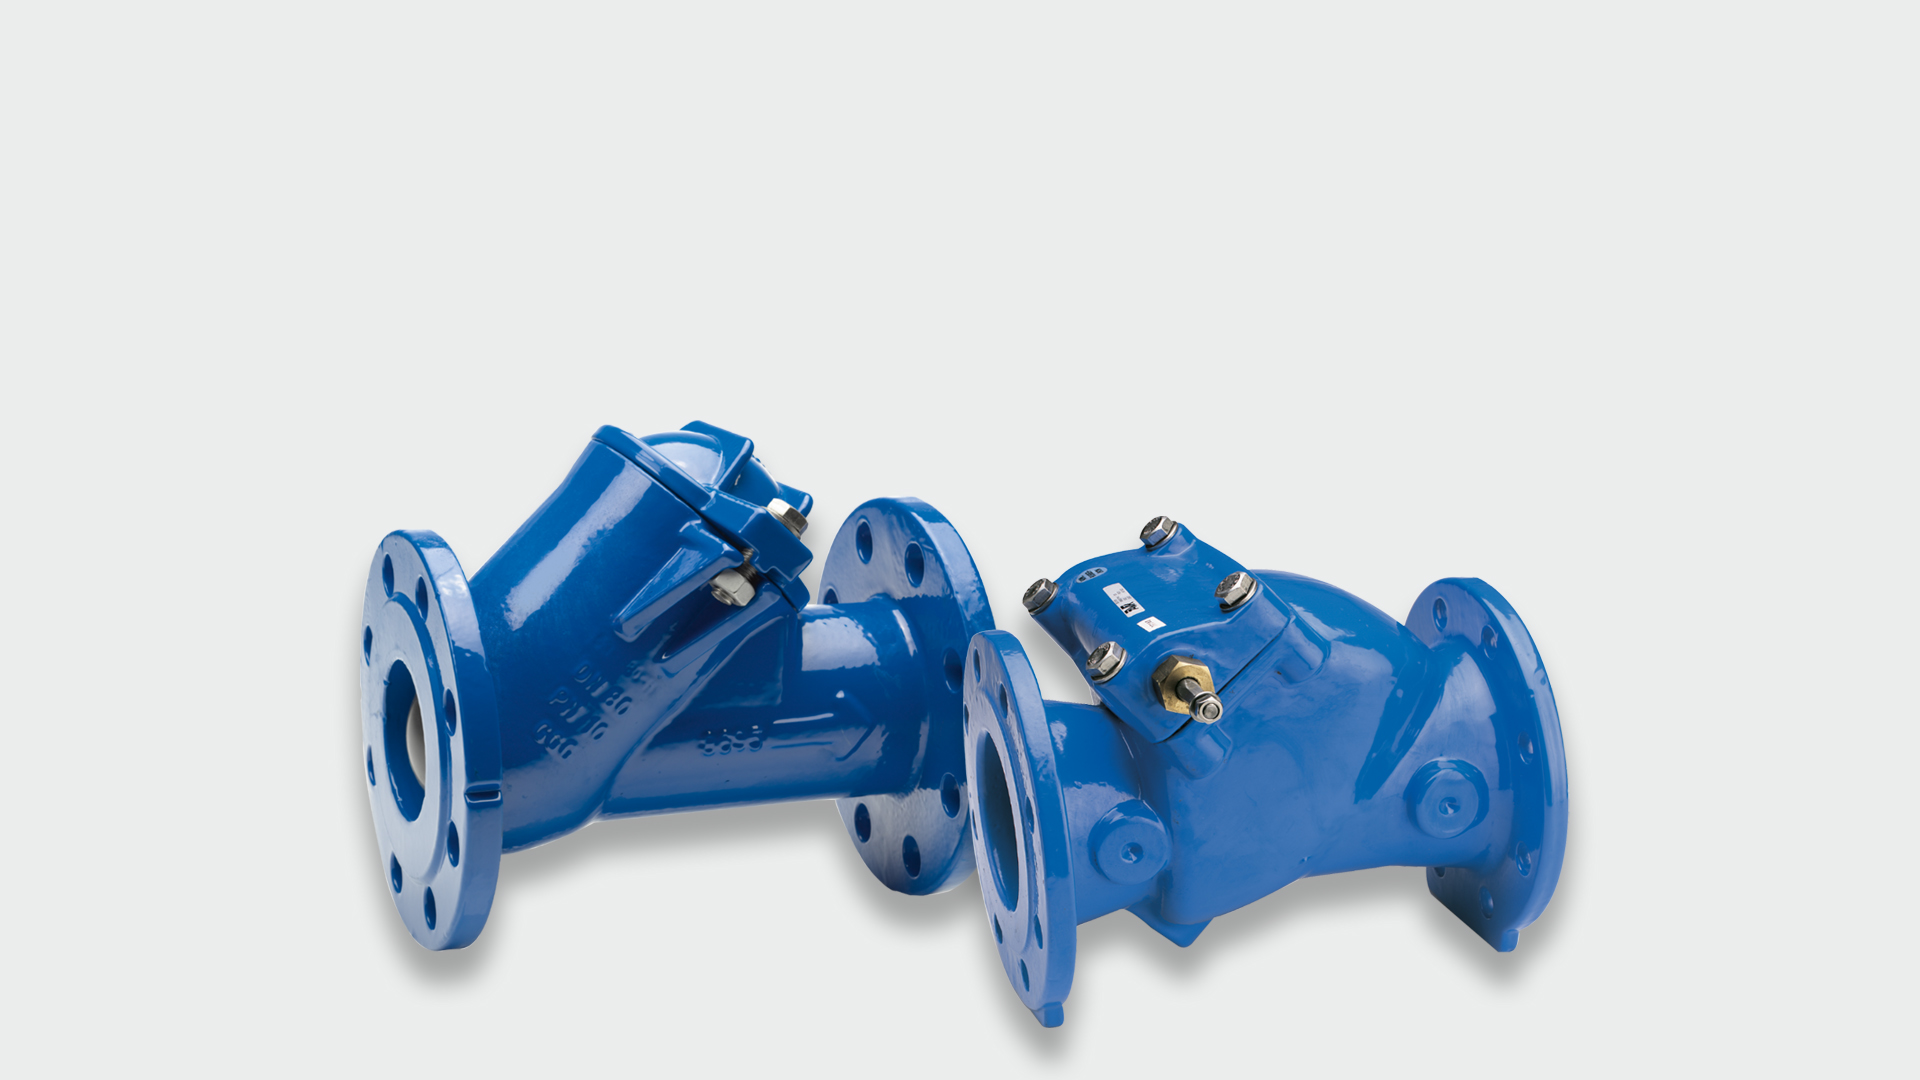 AVK check valves for use in many different applications